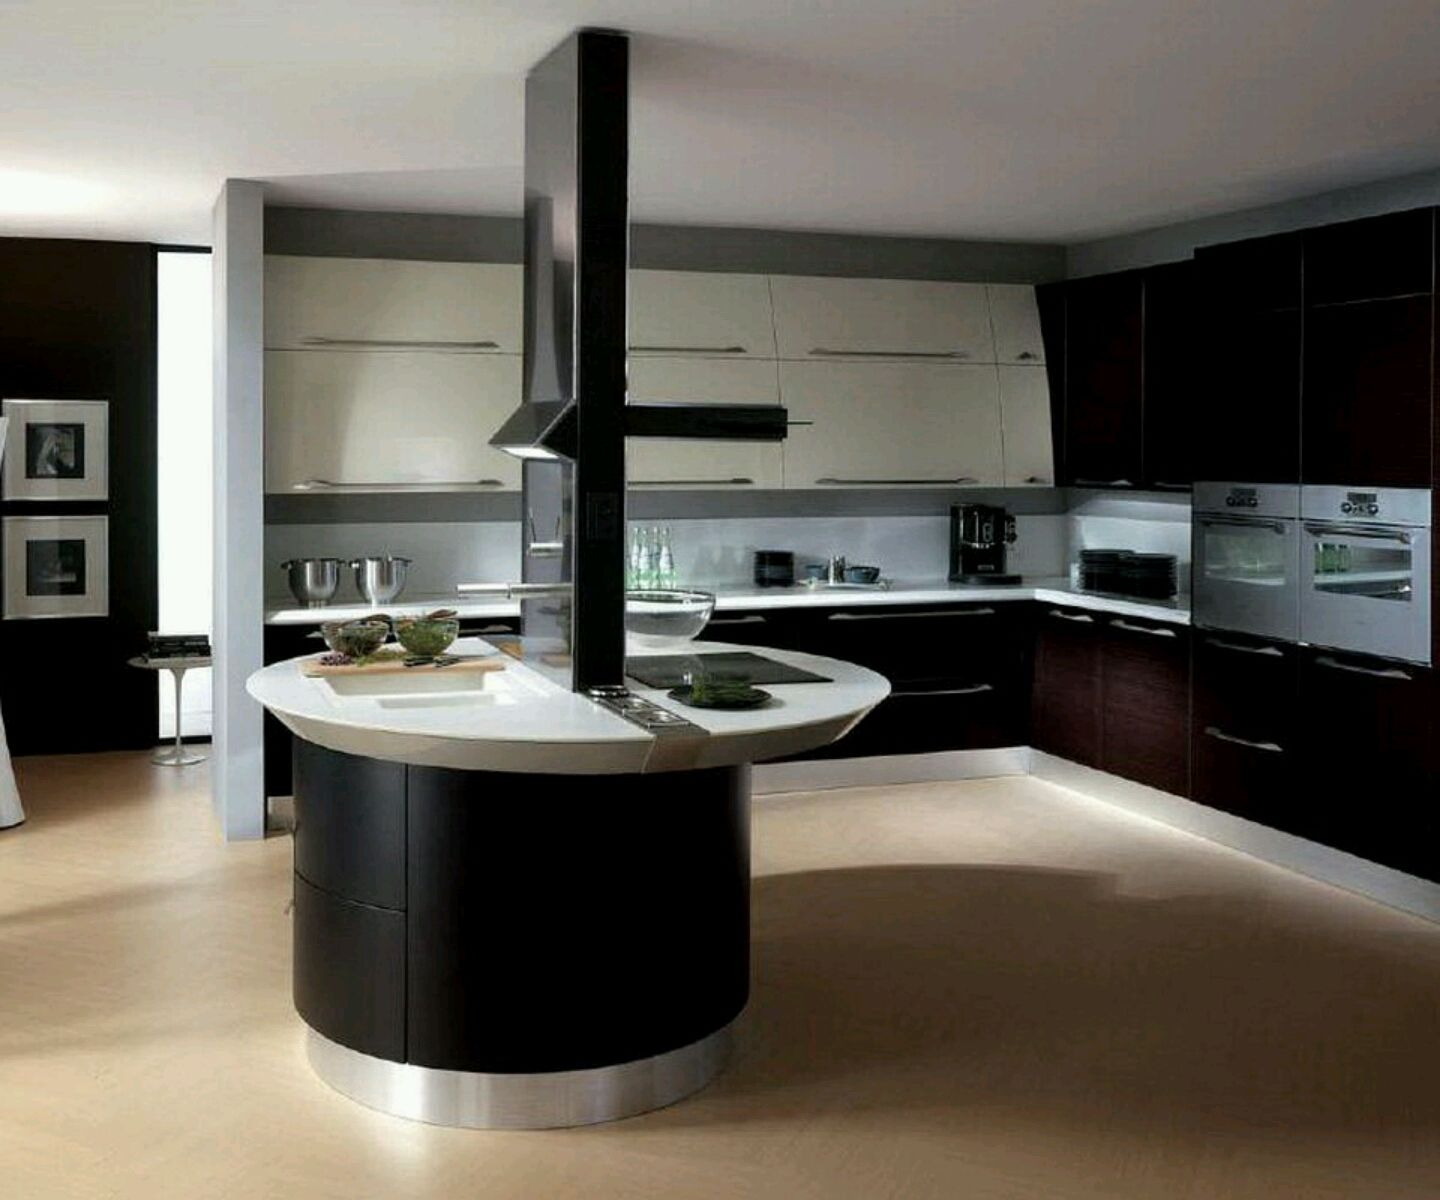 Luxury Modern Kitchen Designs Decoration Adorable Smart Kitchen Islands  Buscar Con Google  Arquitectura Y . Inspiration